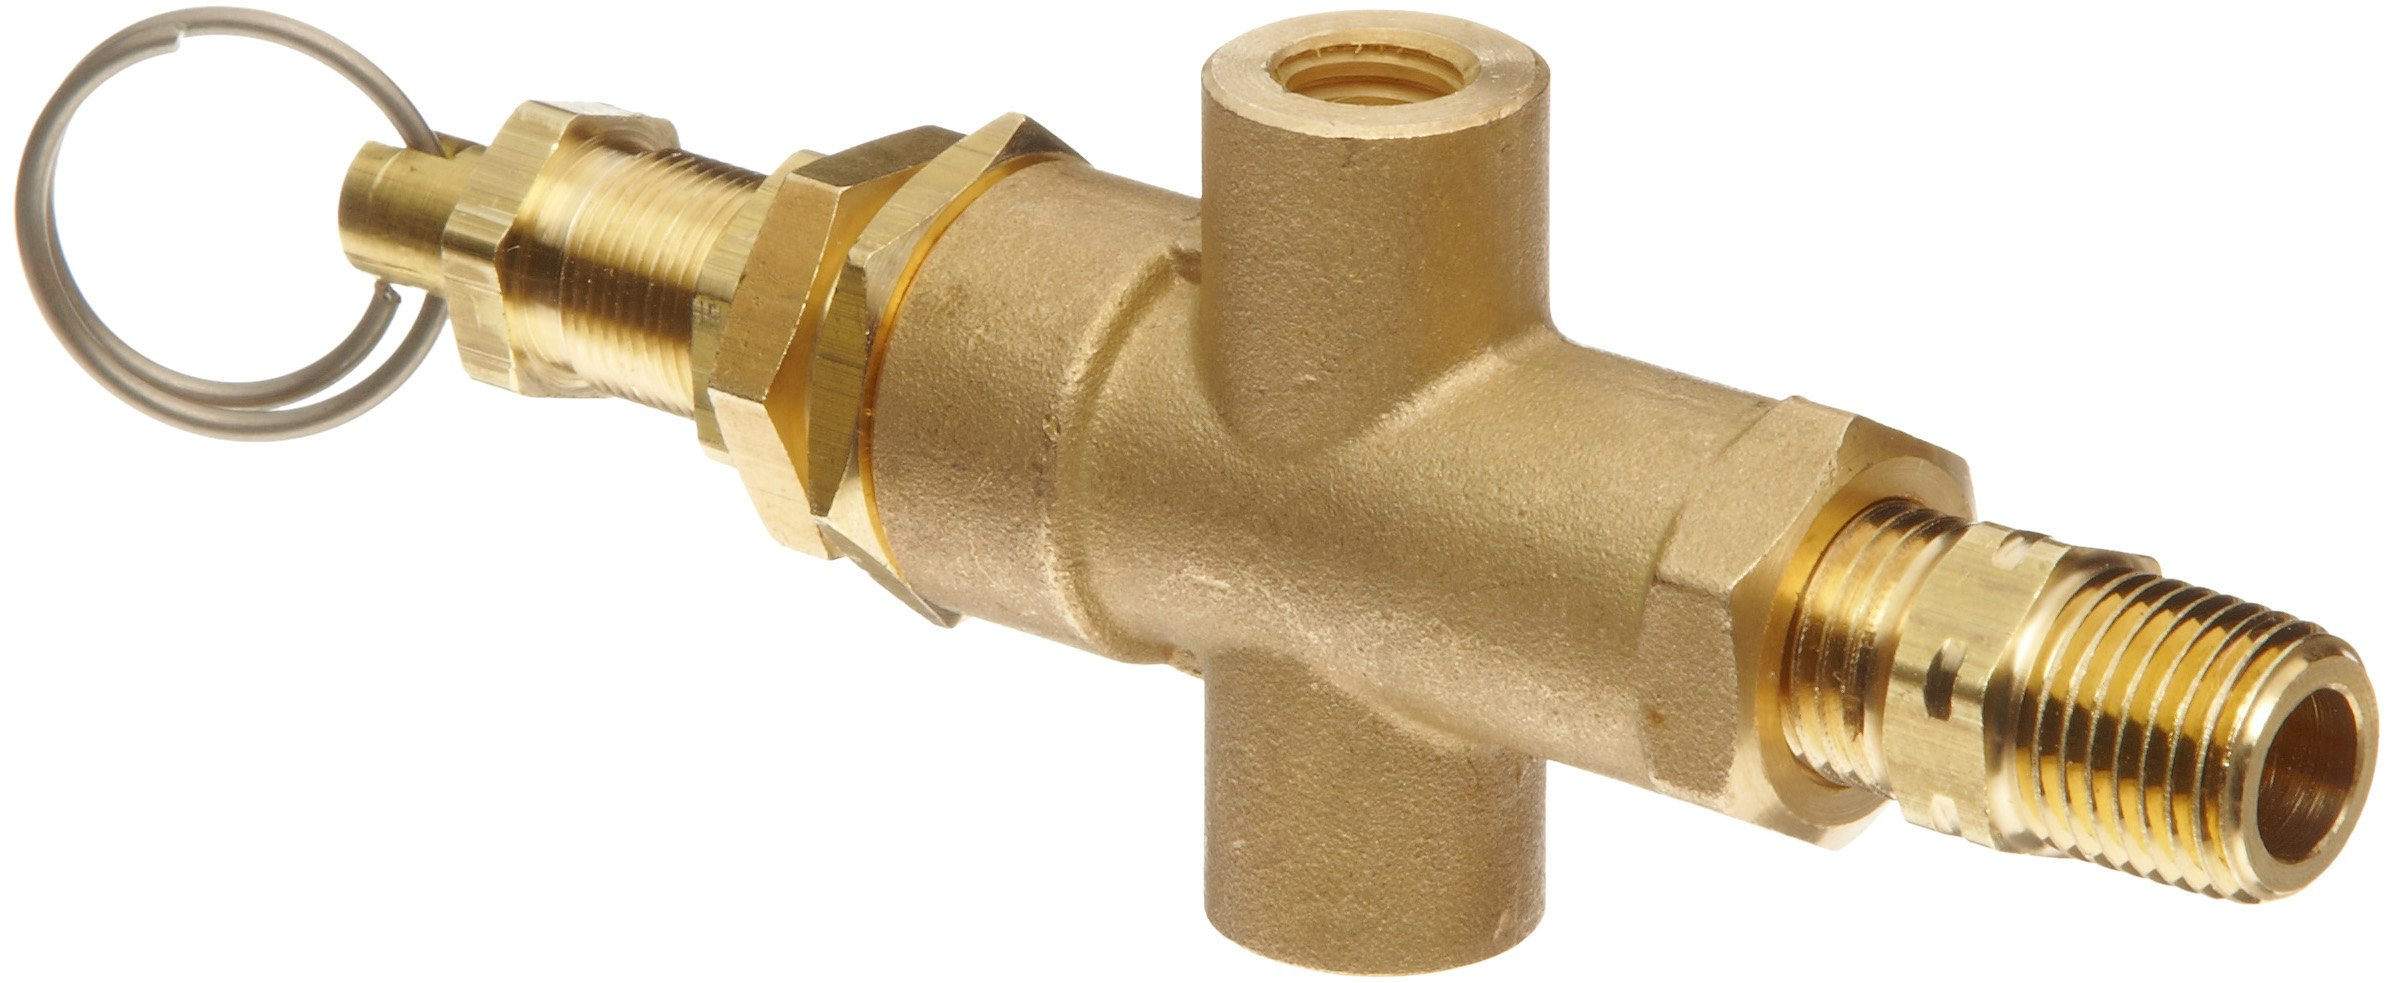 Control Devices Brass Pilot Valve with Adapter, 1/4'' x 1/8'' Female NPT